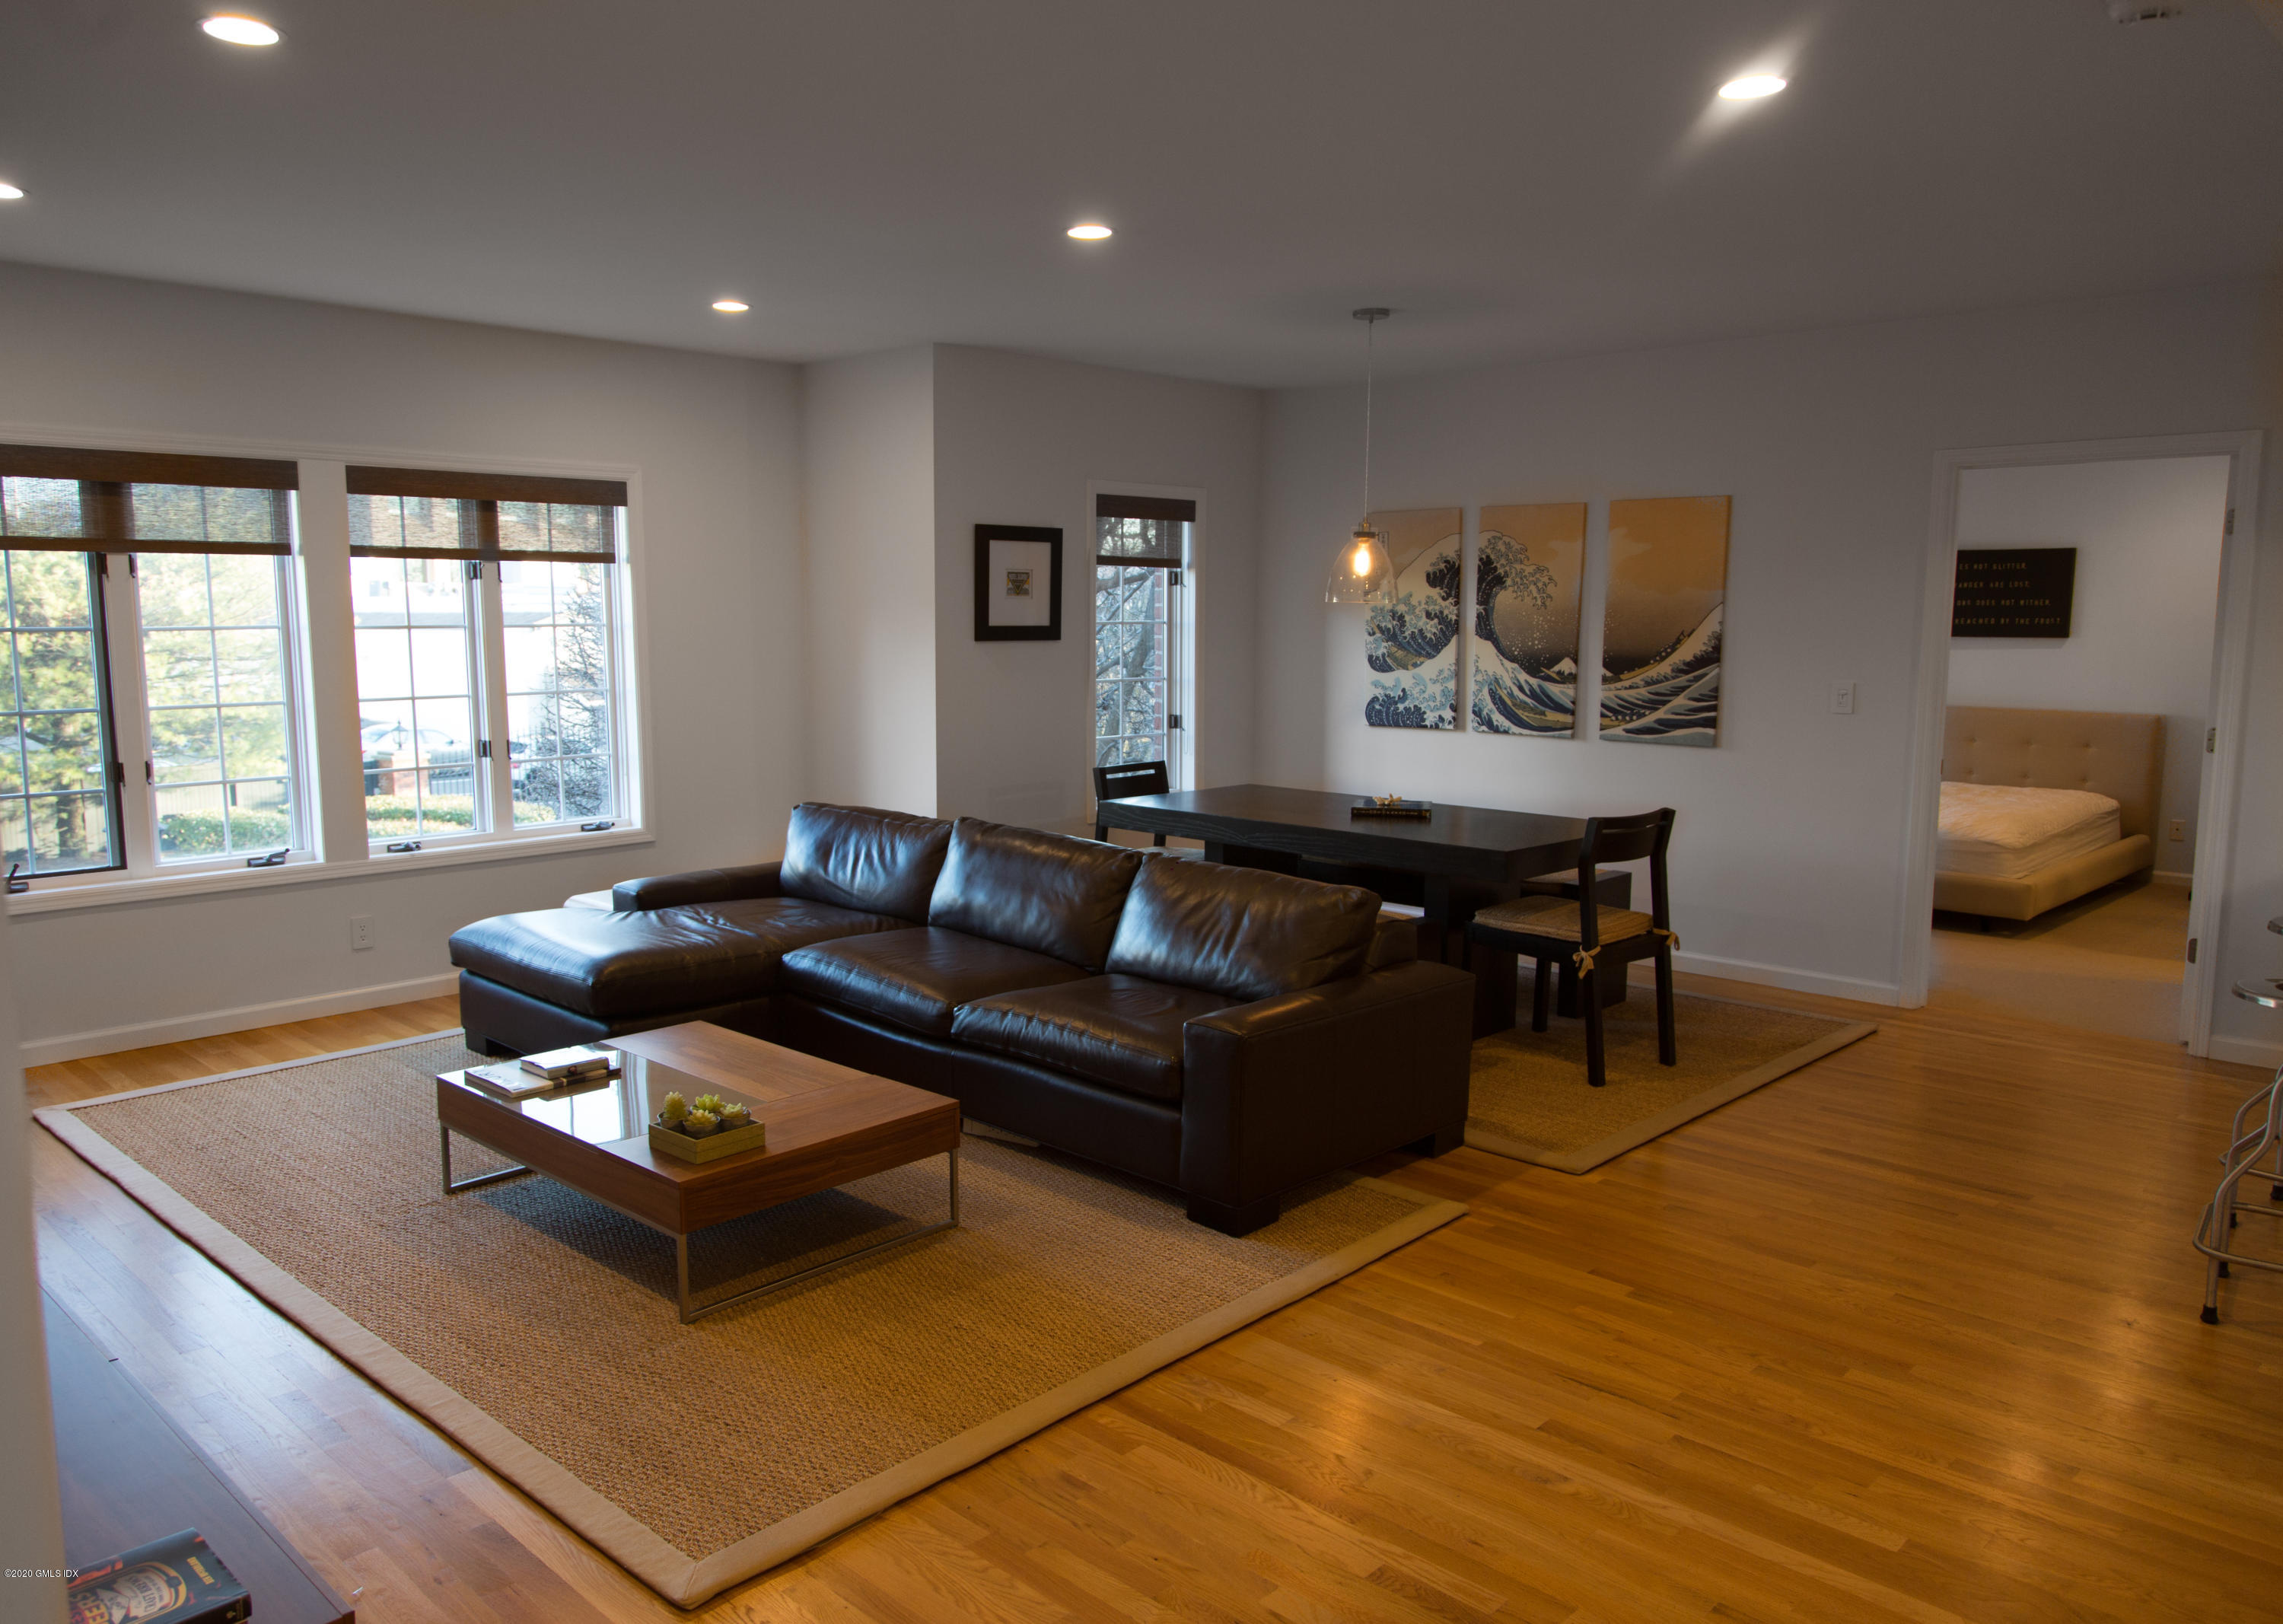 33 Putnam Avenue, Greenwich, Connecticut 06830, 2 Bedrooms Bedrooms, ,2 BathroomsBathrooms,Condominium,For Rent,Putnam,110726